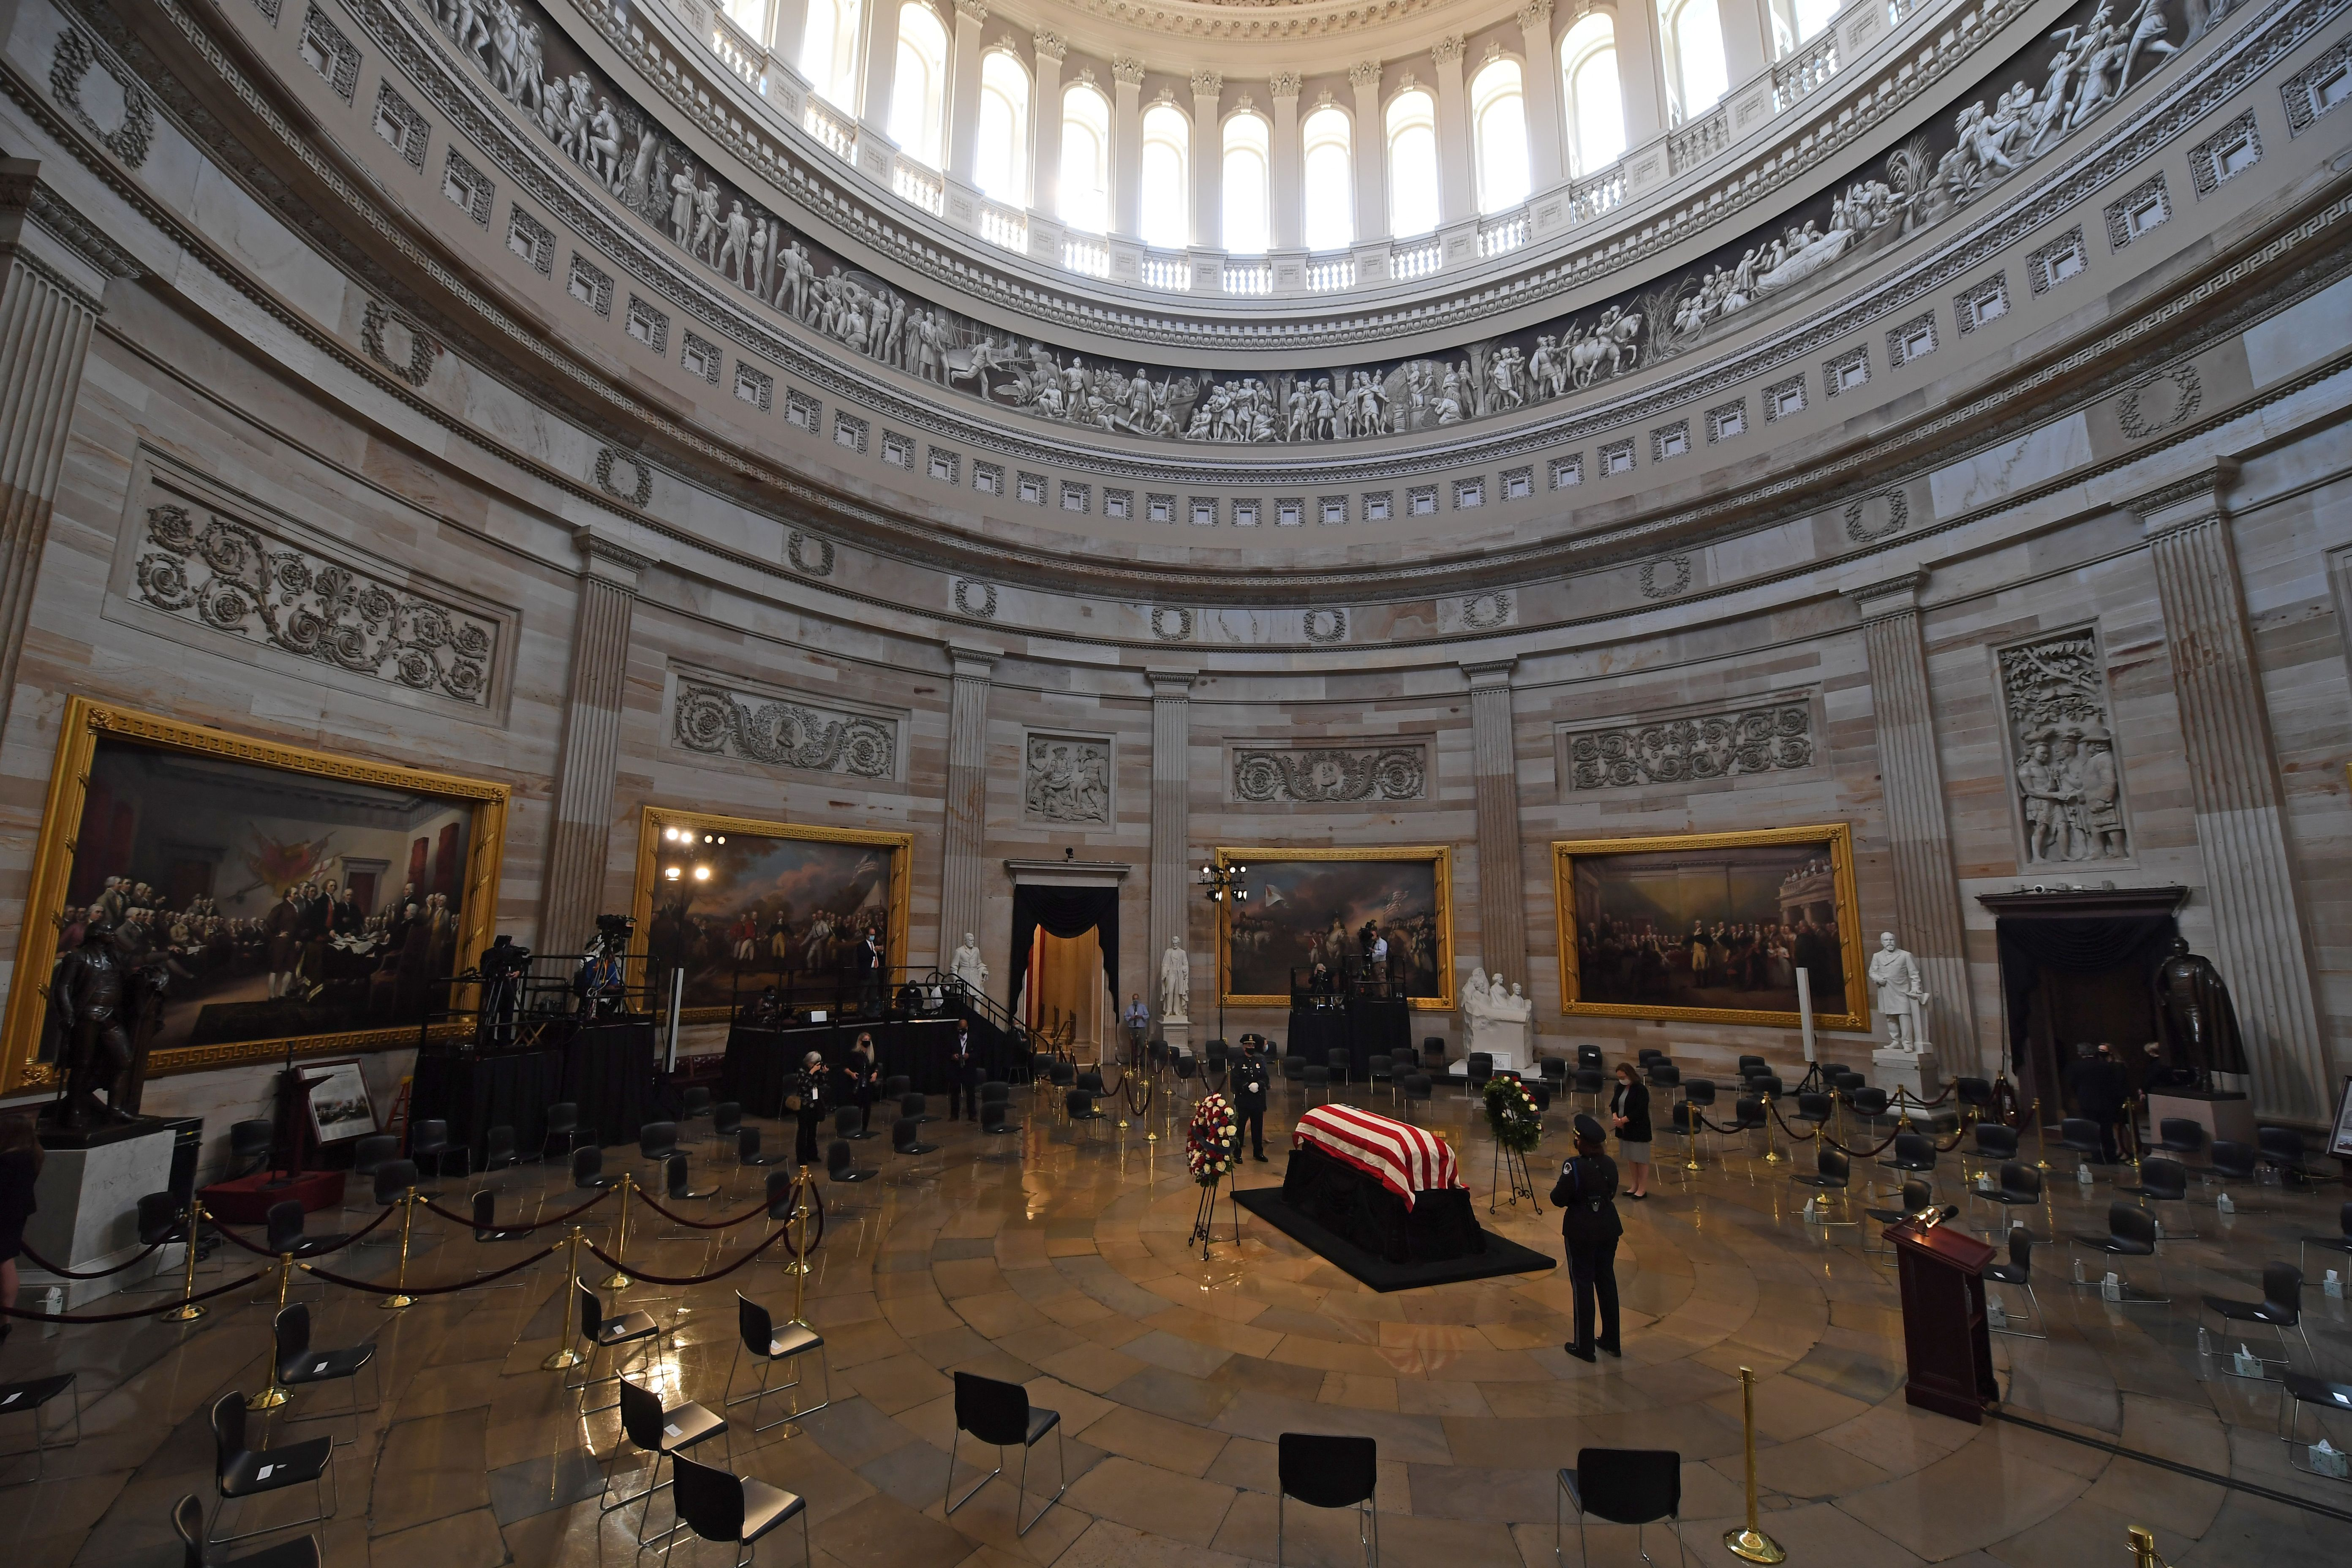 People pay their respects to the late Rep. John Lewis as he lies in state at the Capitol Rotunda in Washington, DC.